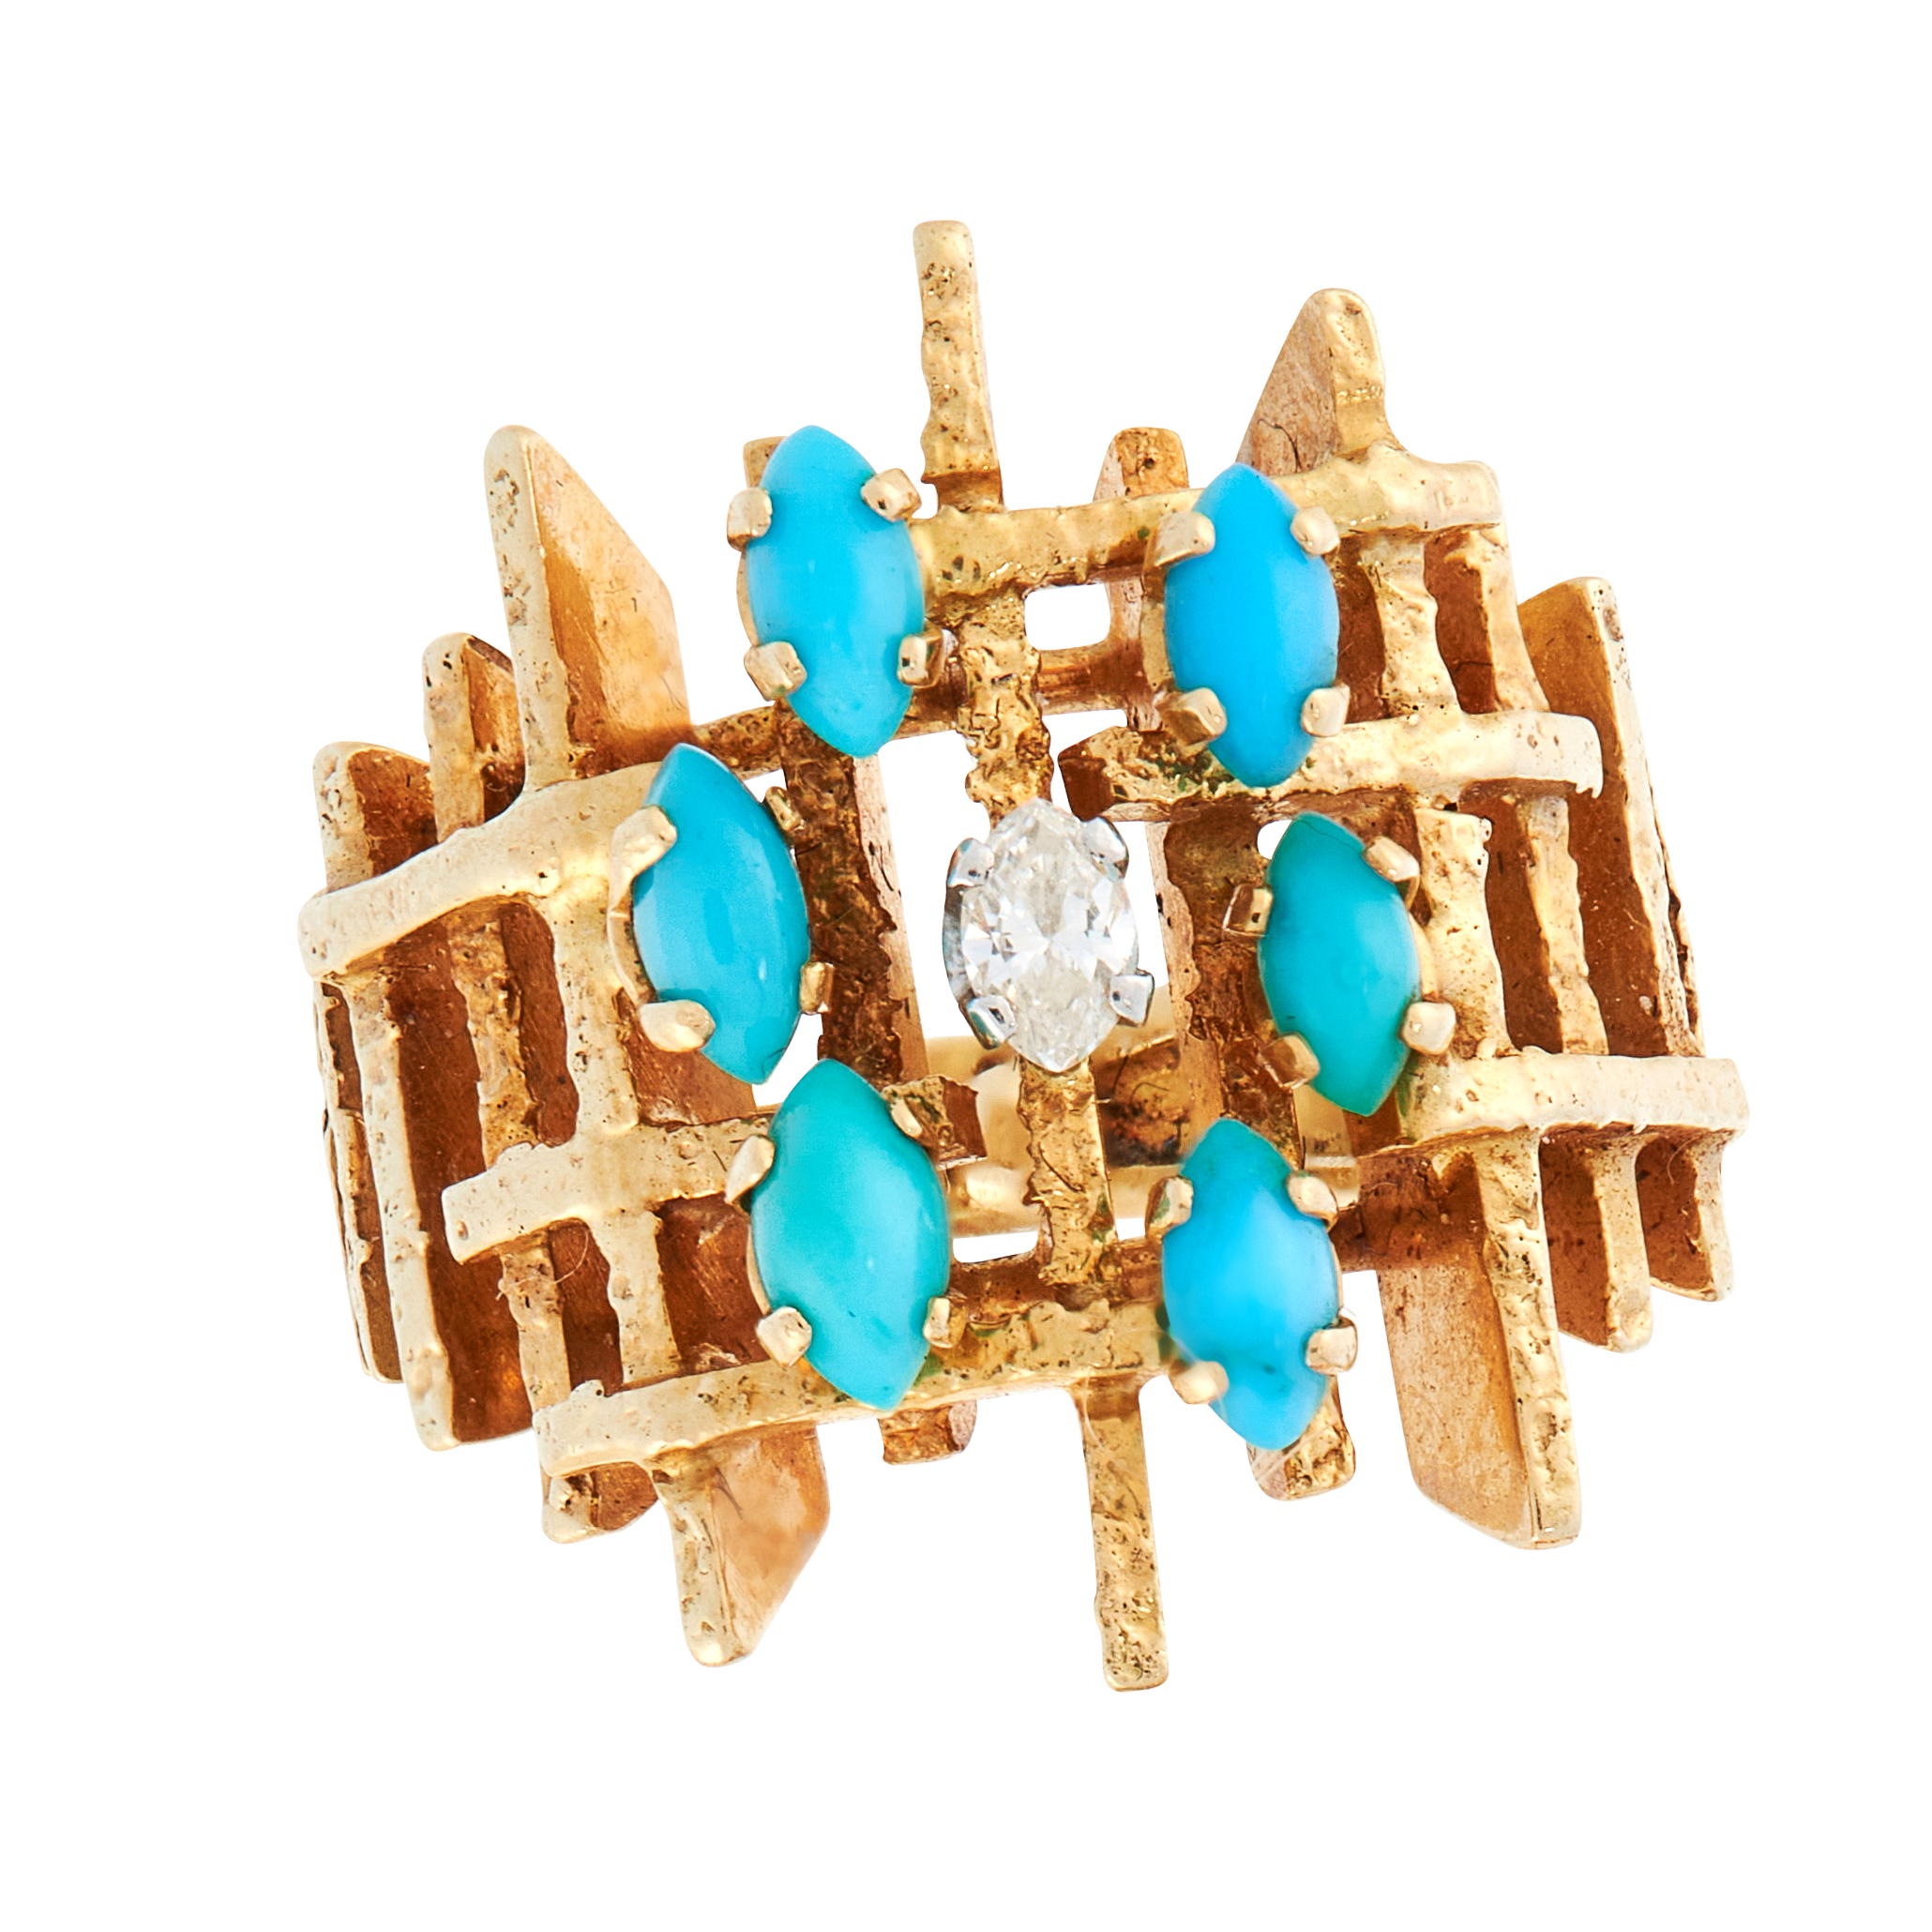 A VINTAGE TURQUOISE AND DIAMOND DRESS RING, CIRCA 1970 in 18ct yellow gold and platinum, in the